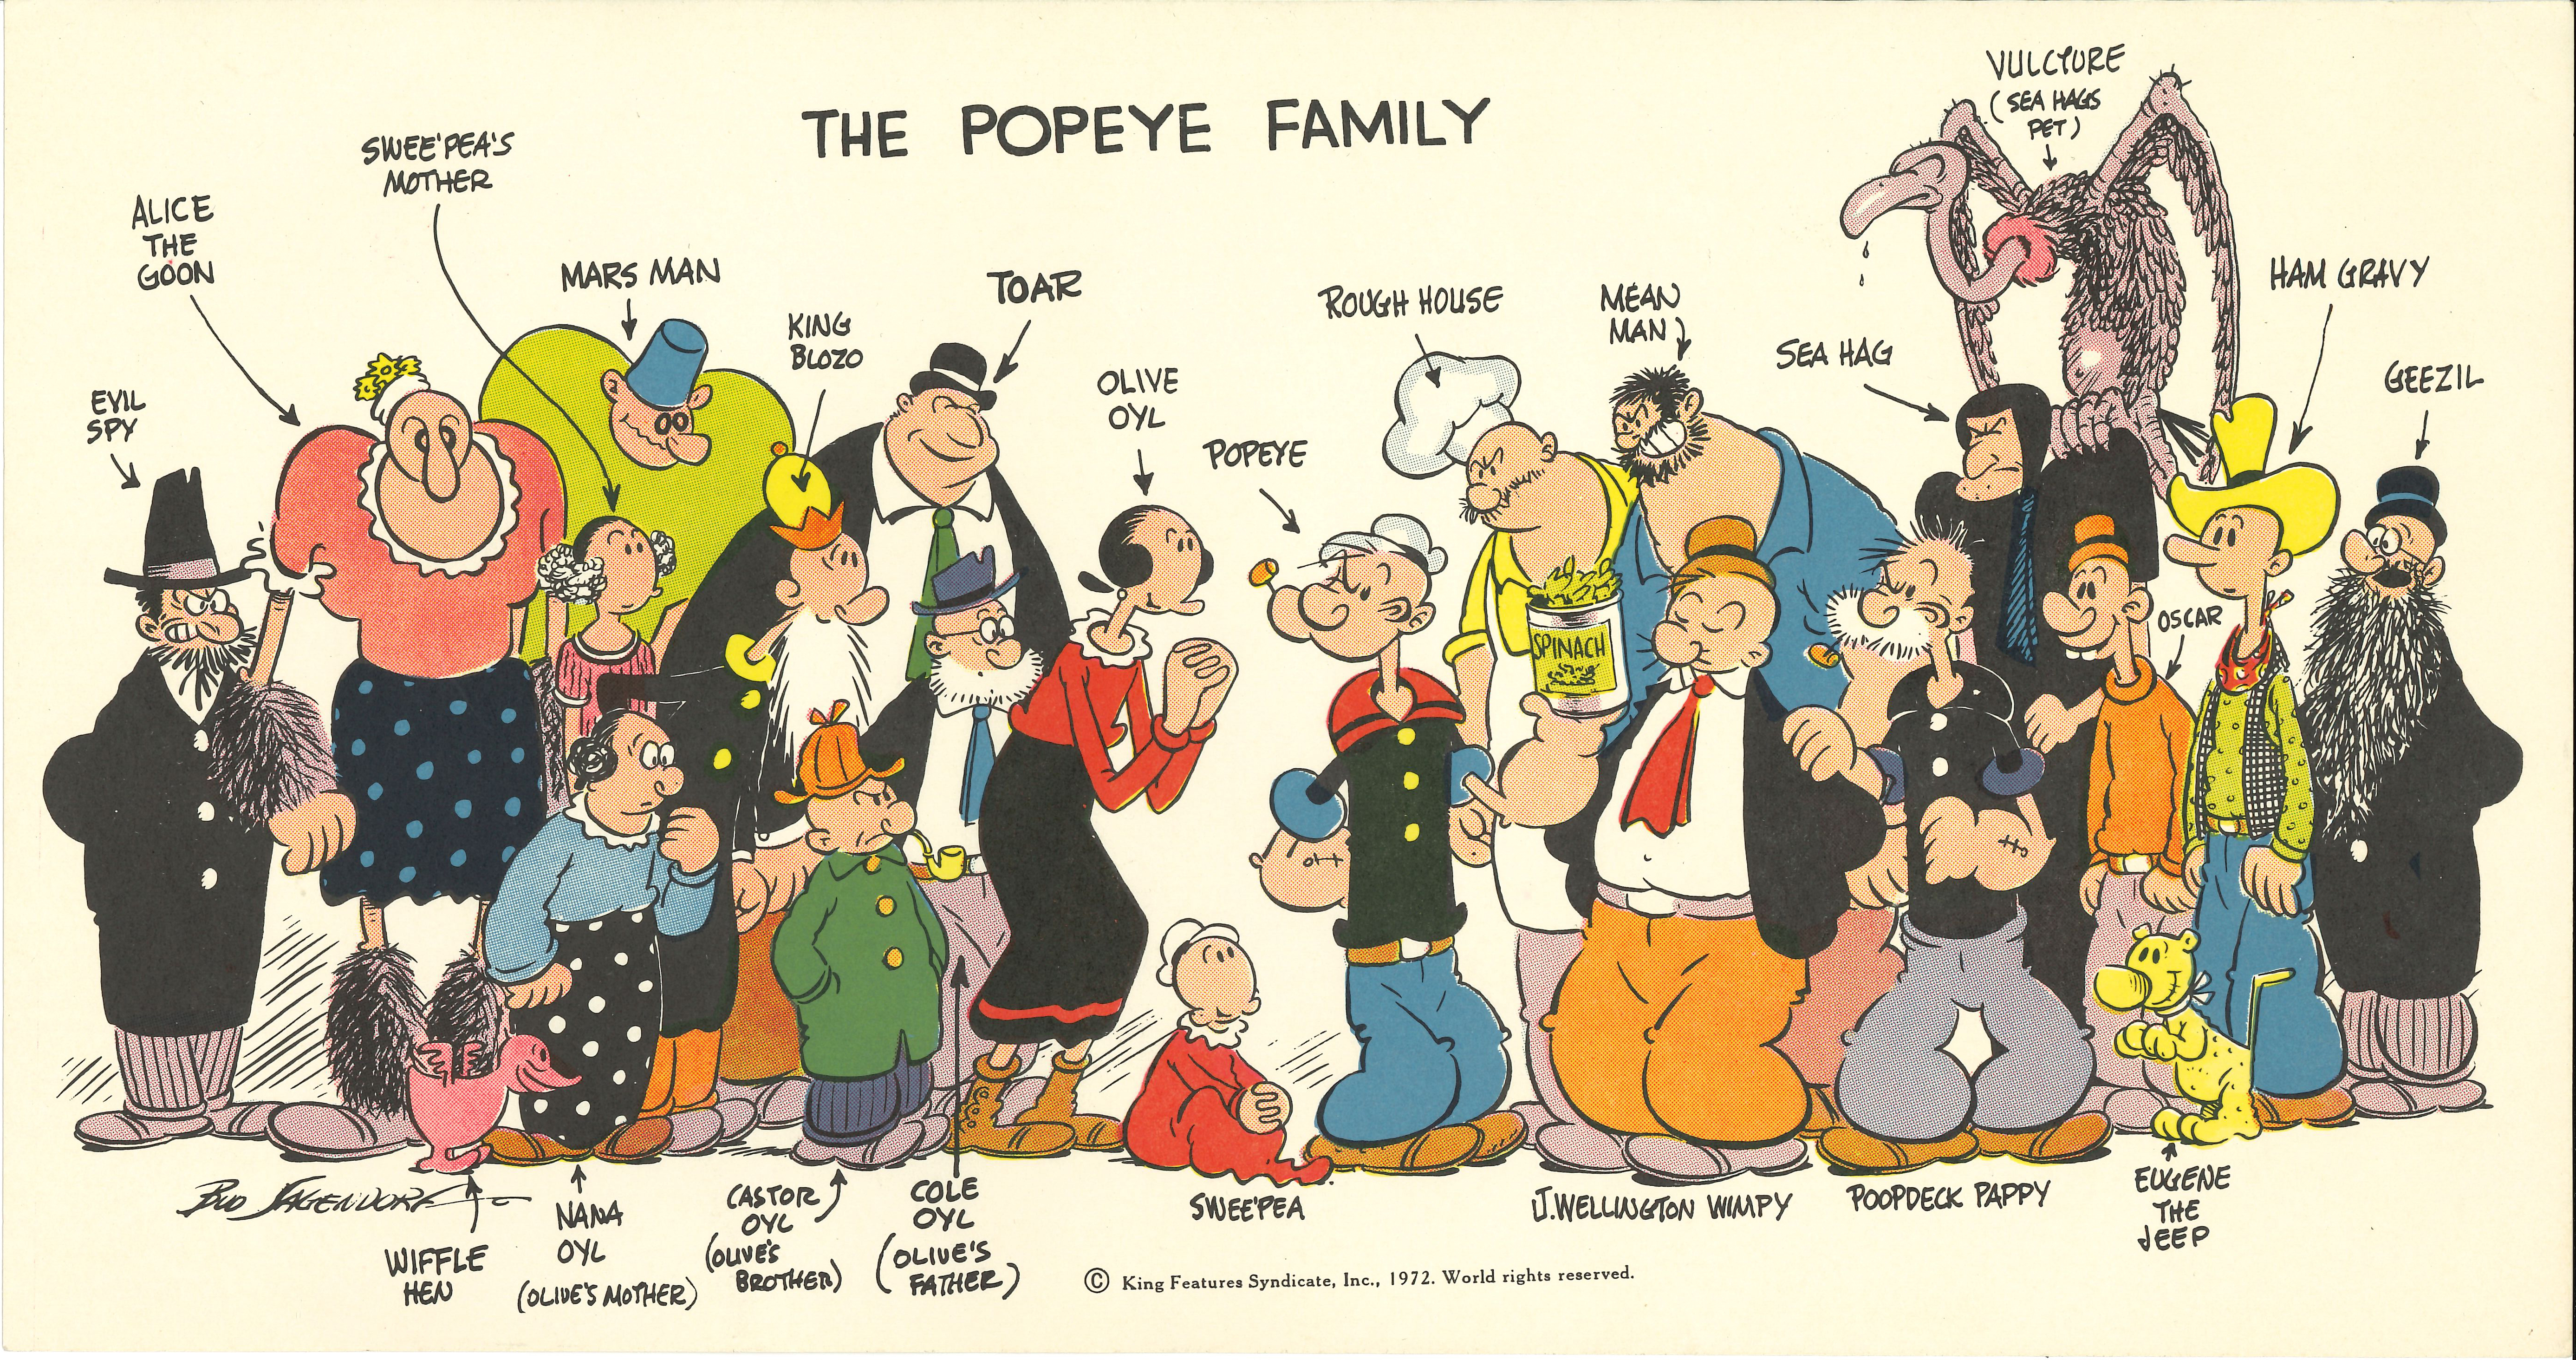 The Popeye Family